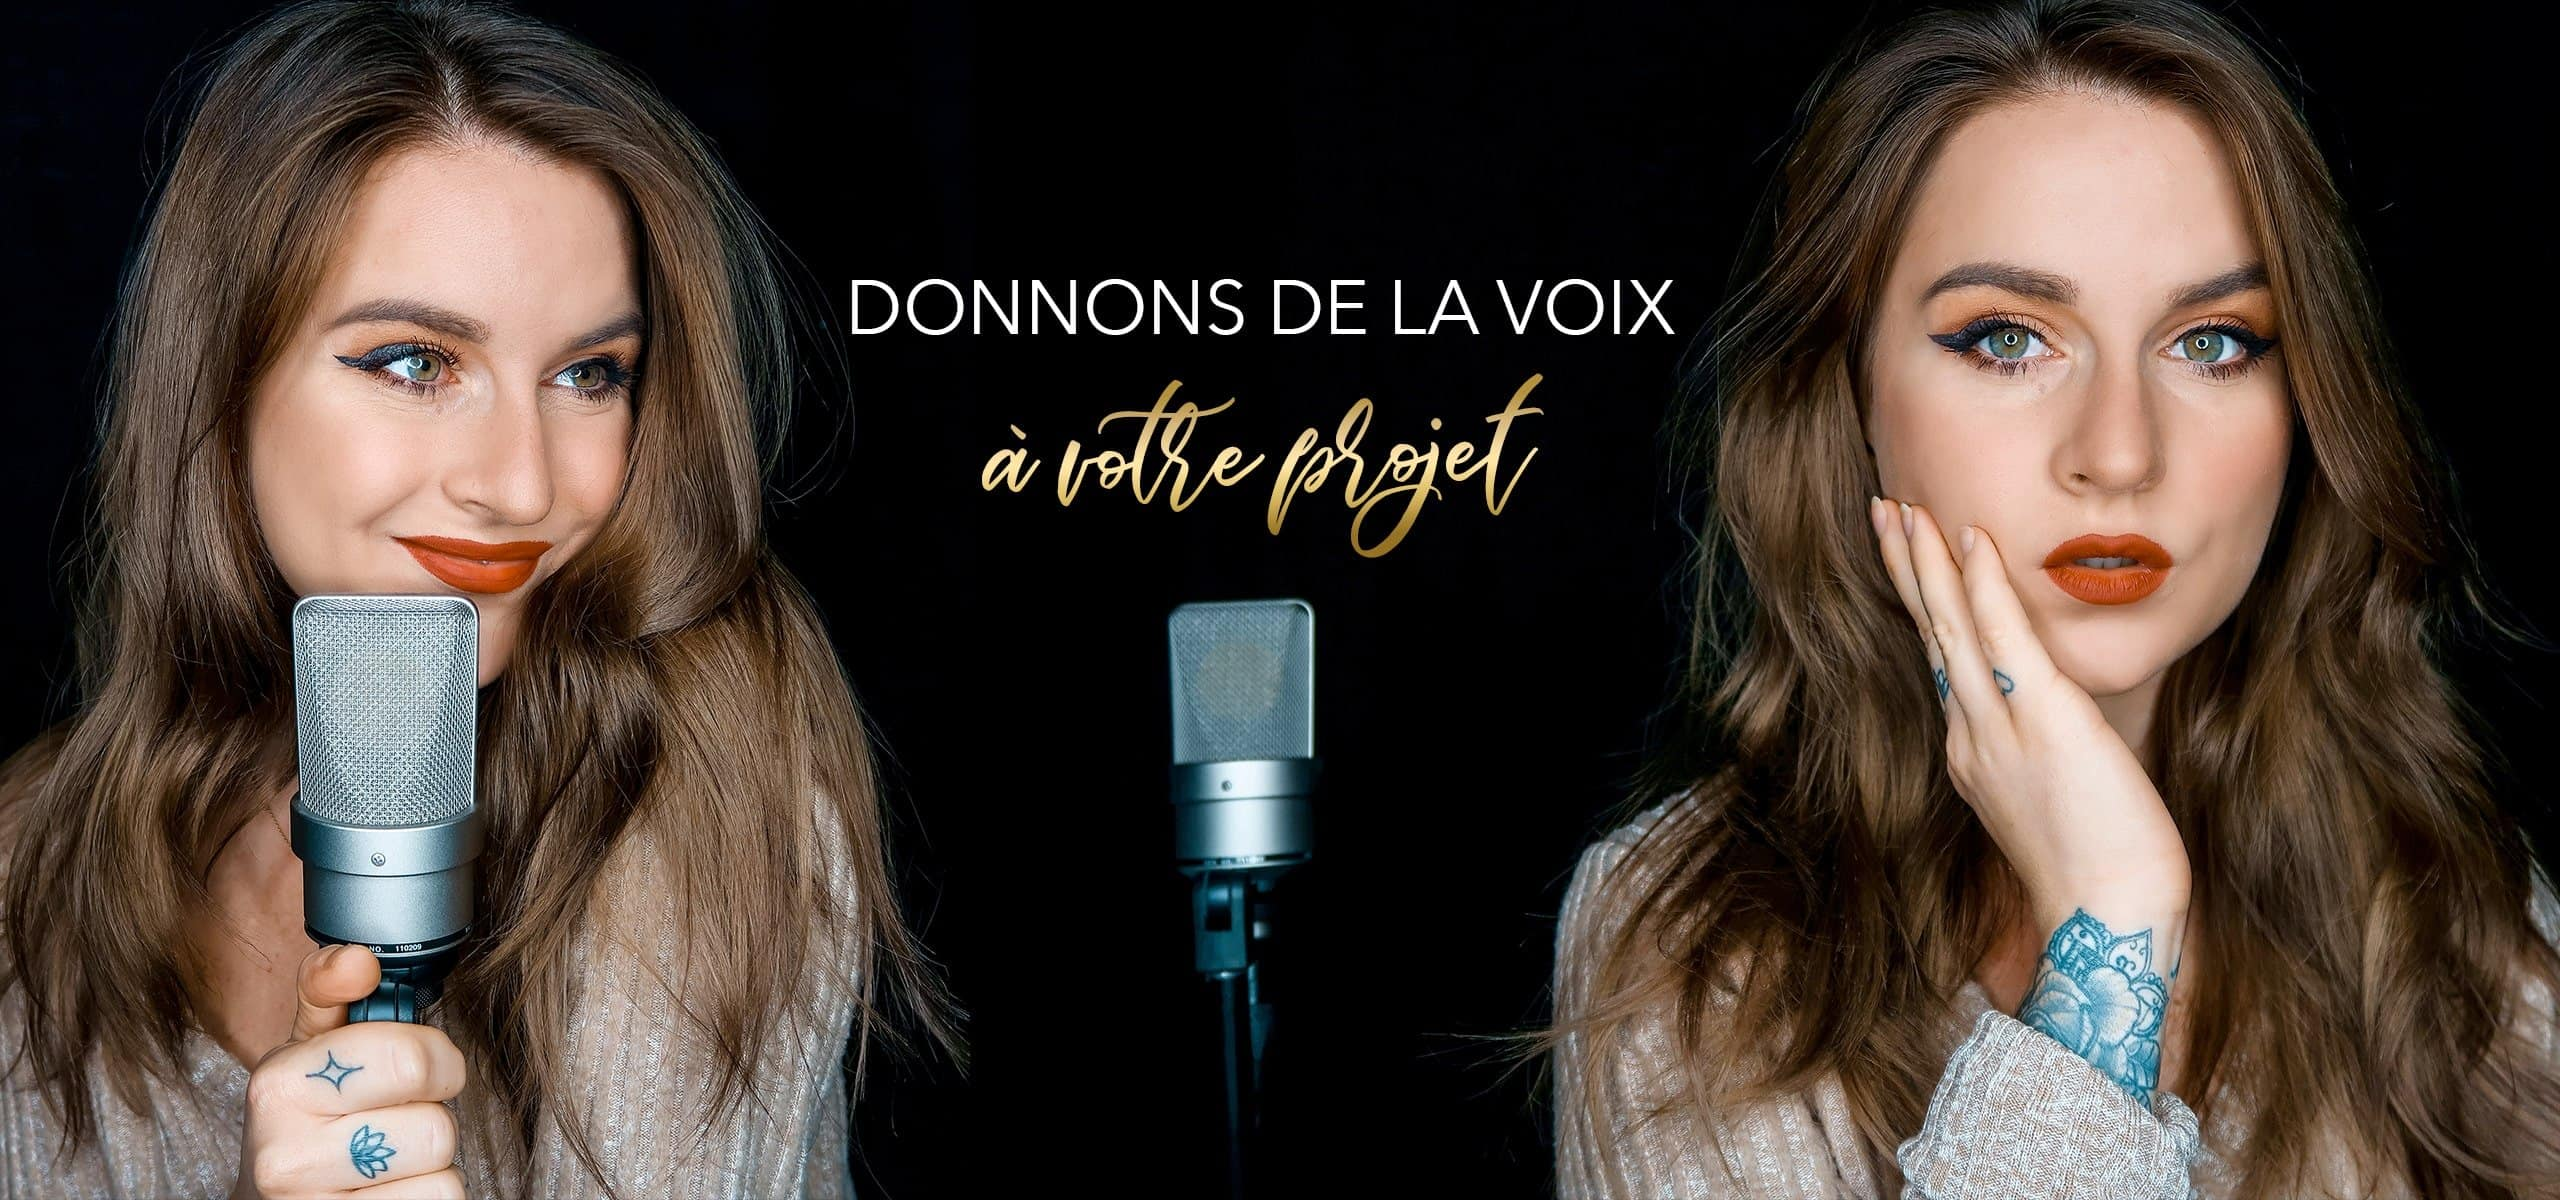 french female voice over